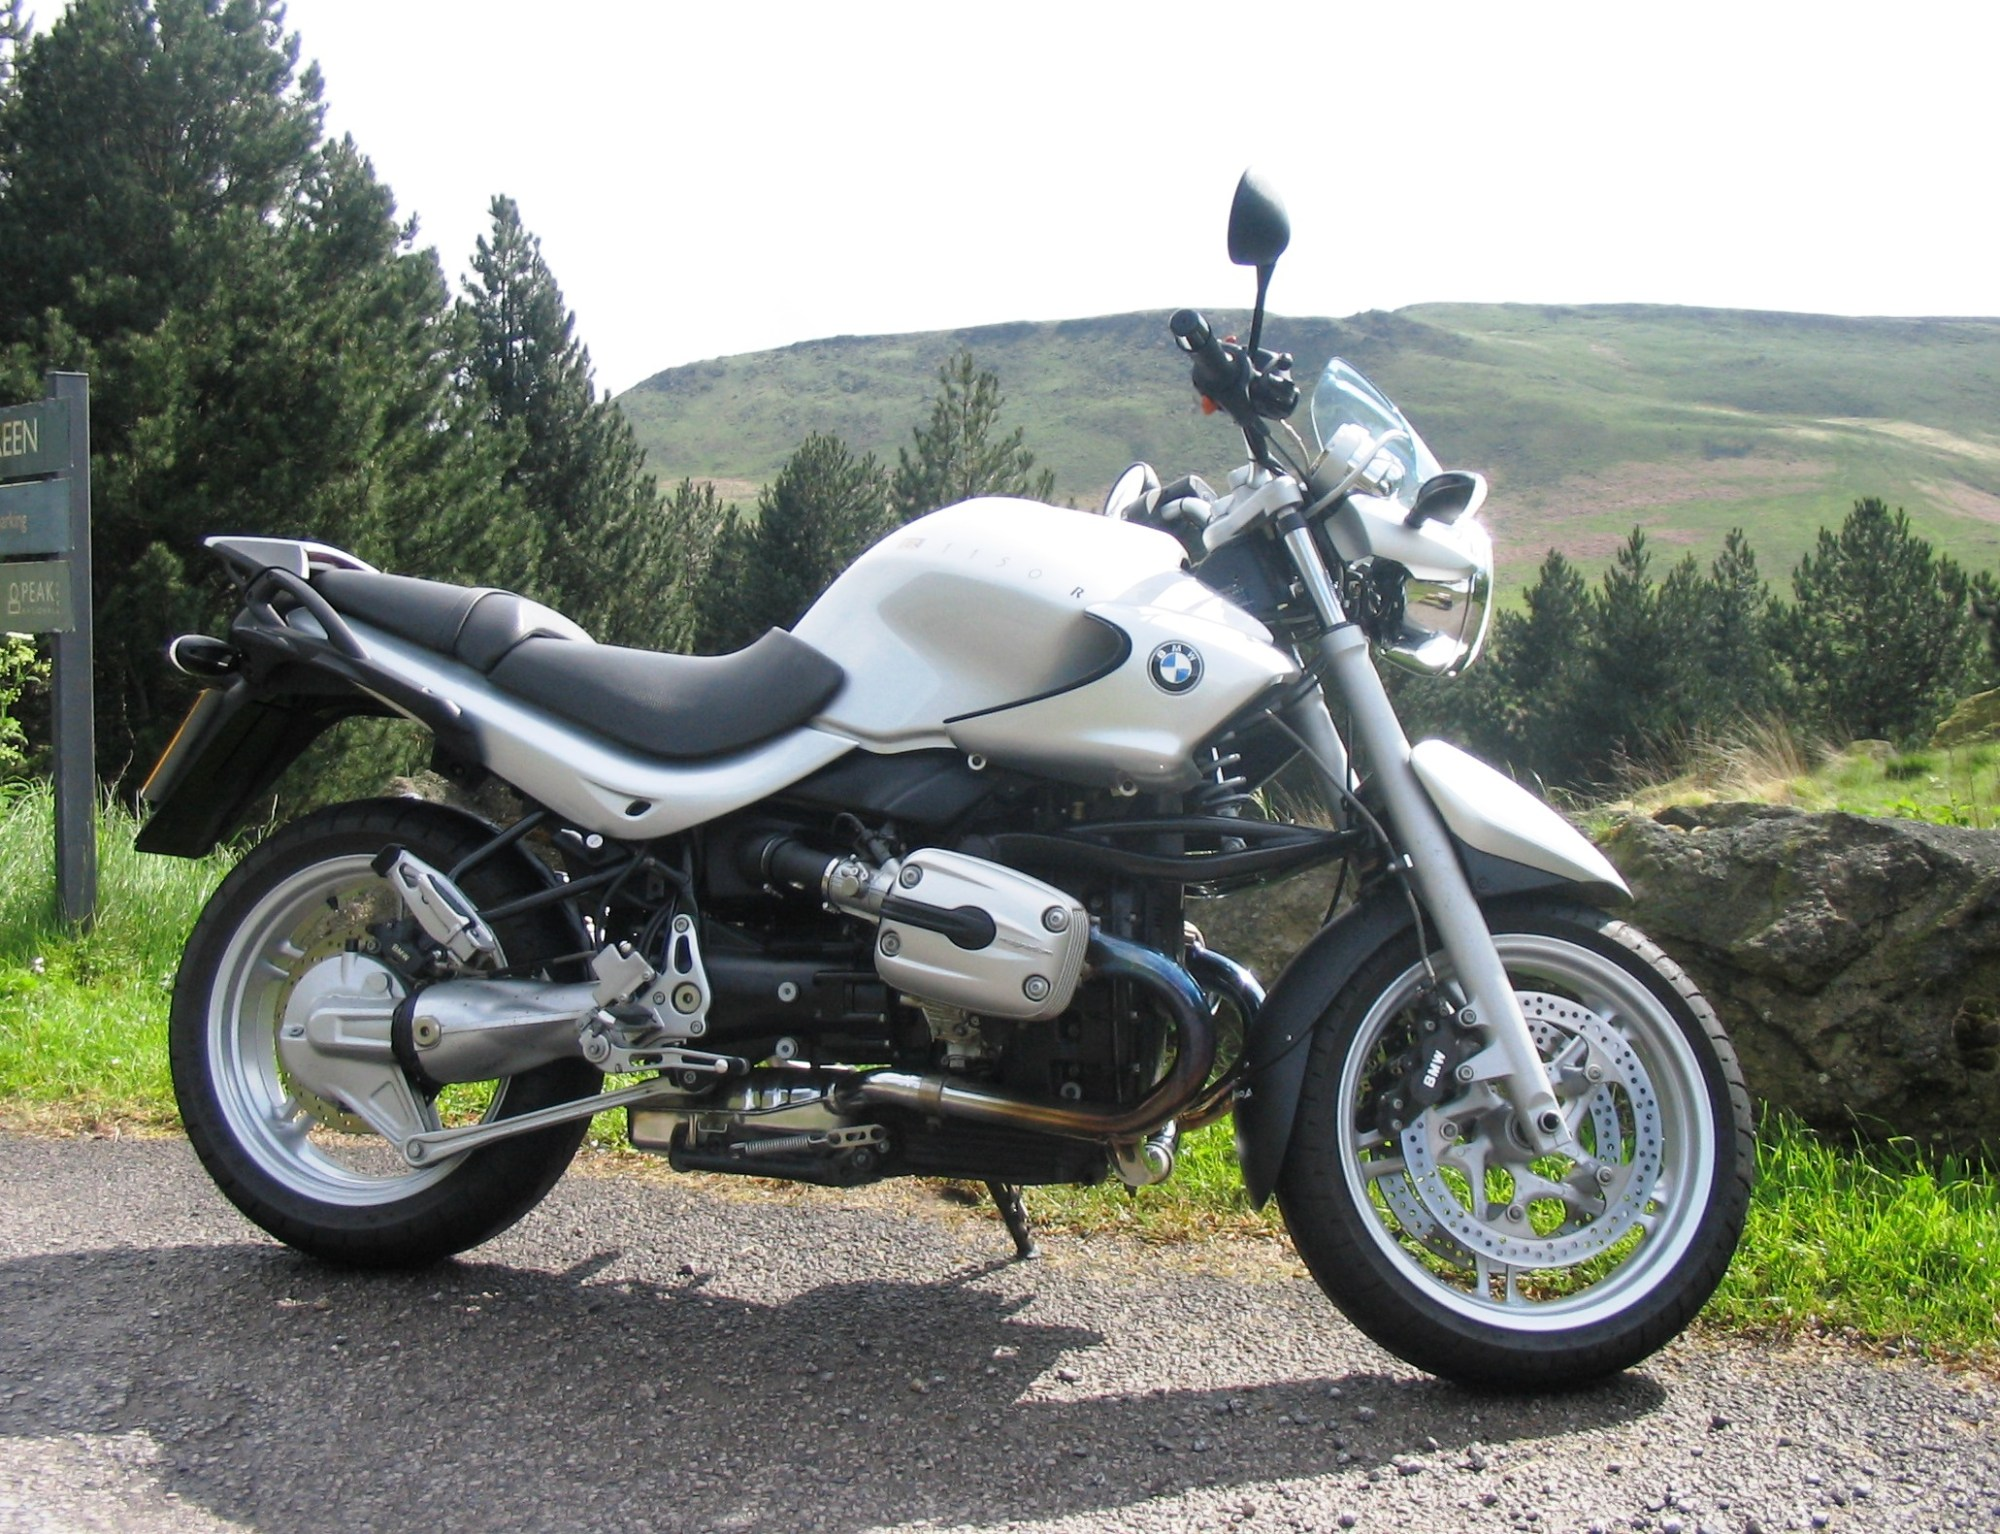 hight resolution of bmw r 1150 rt 2003 photo 2